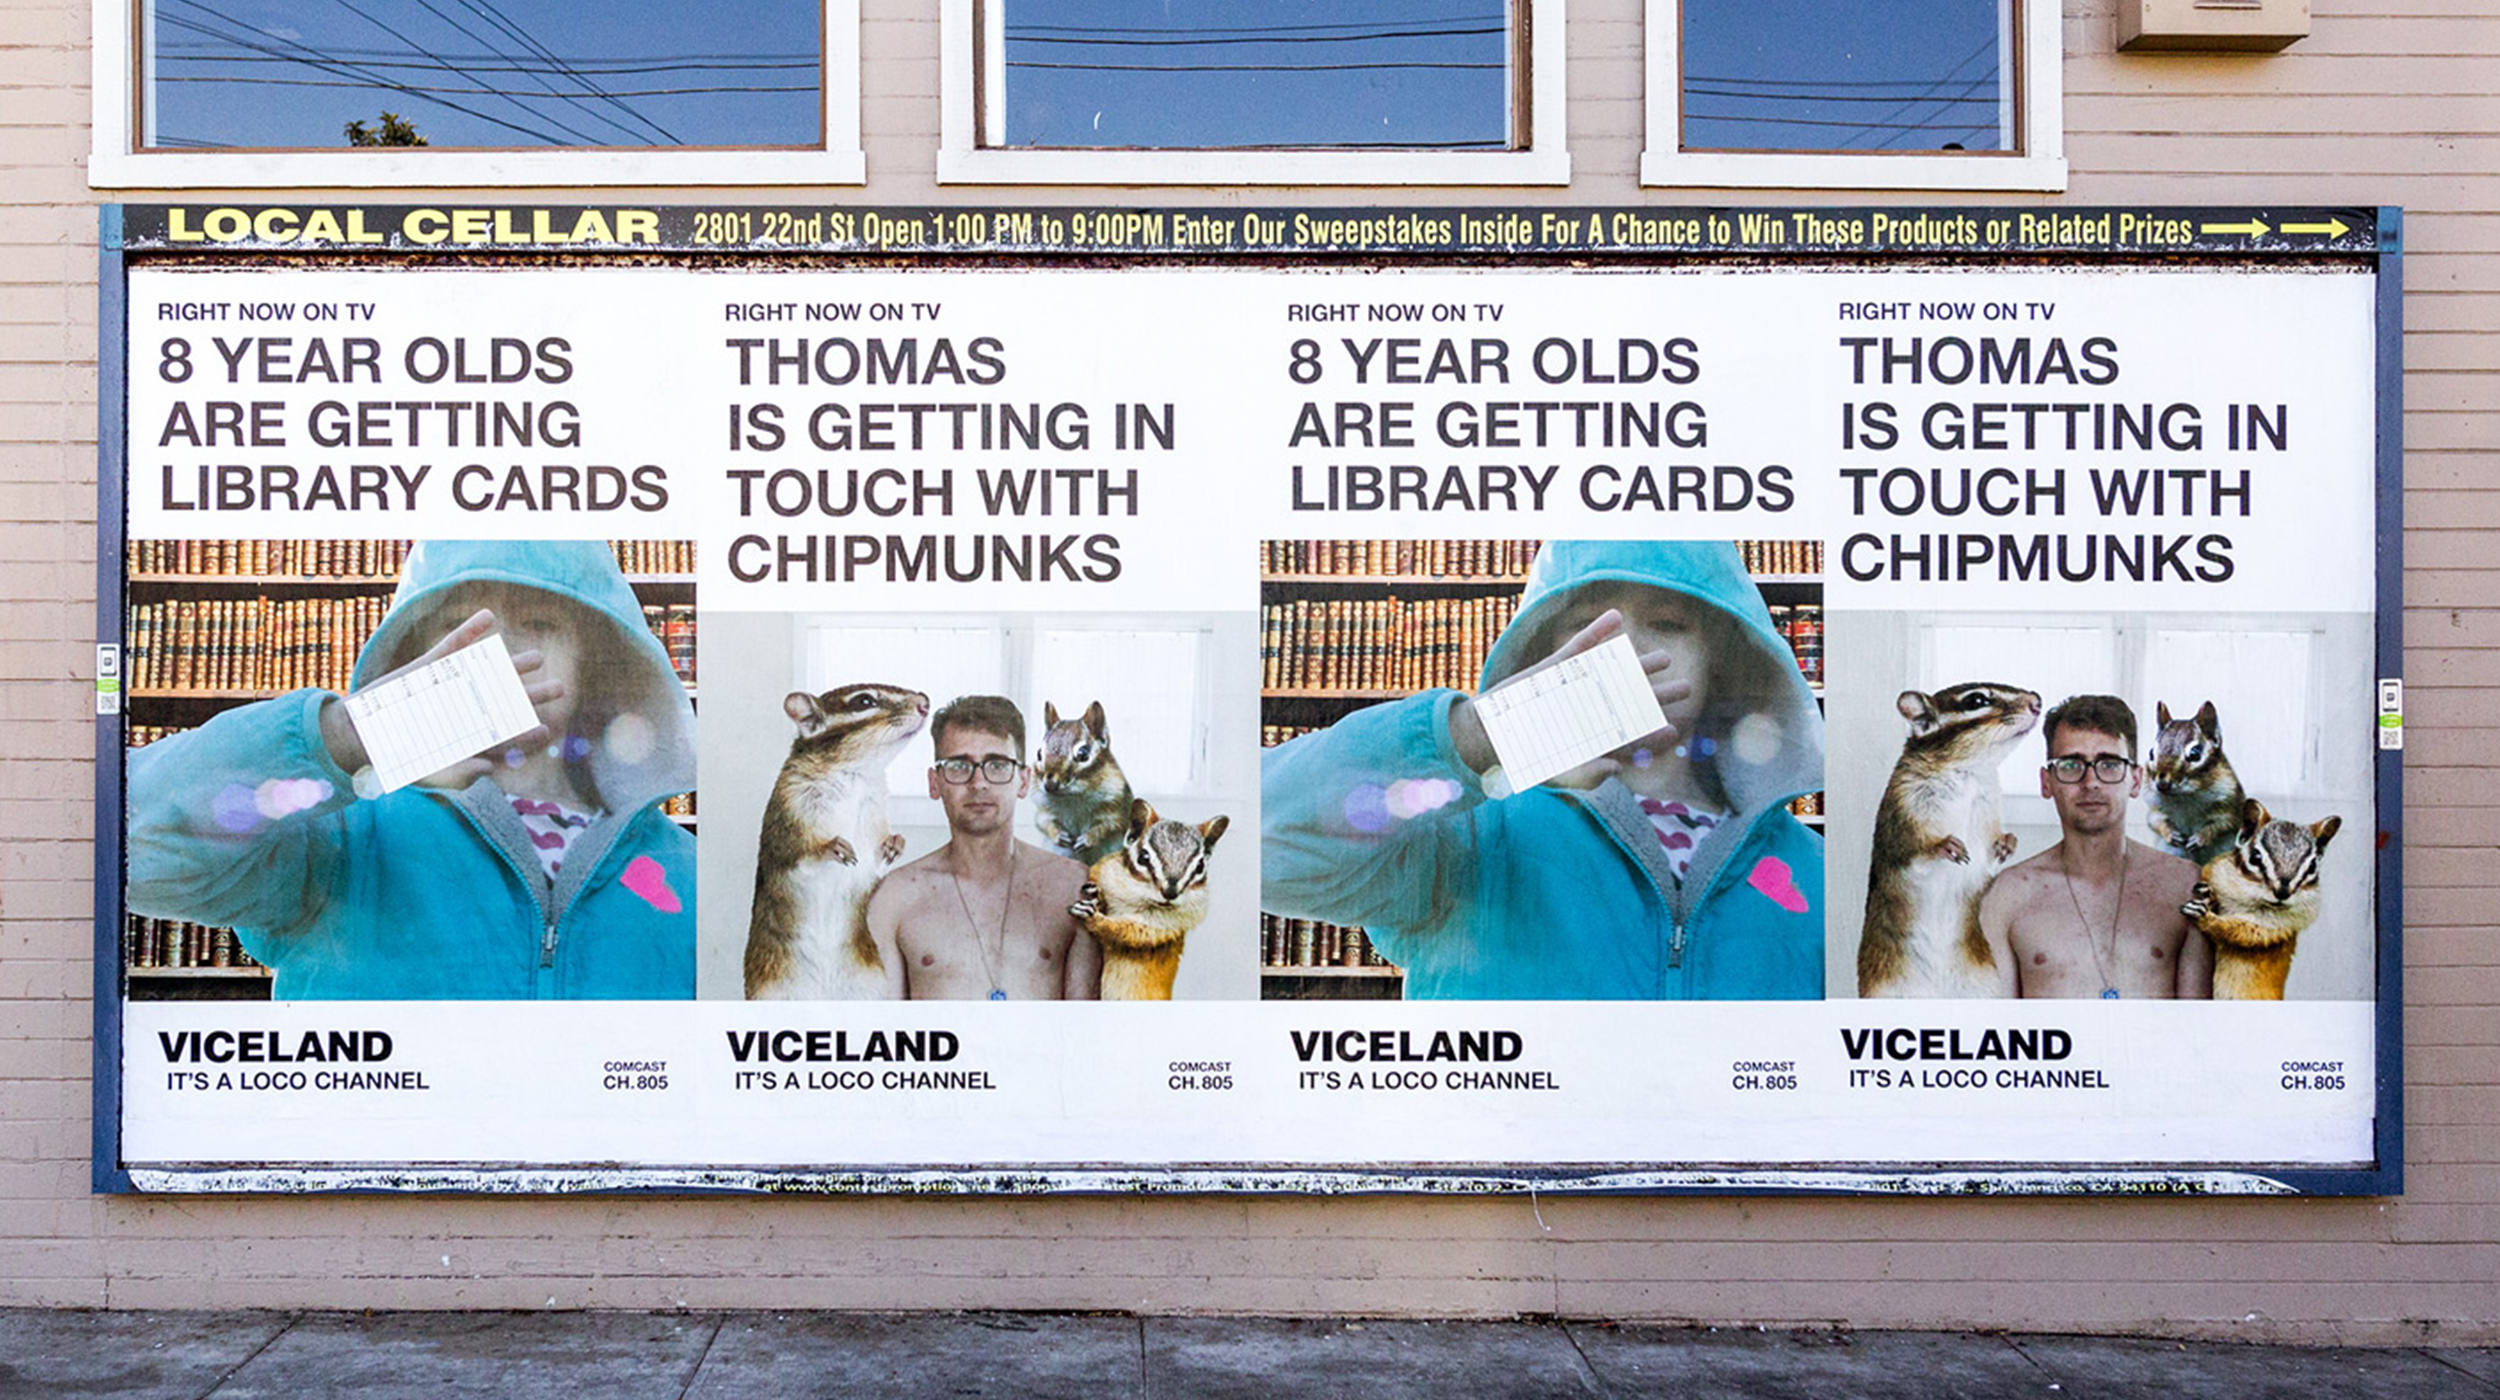 Viceland Right Now Marketing Campaign Updated